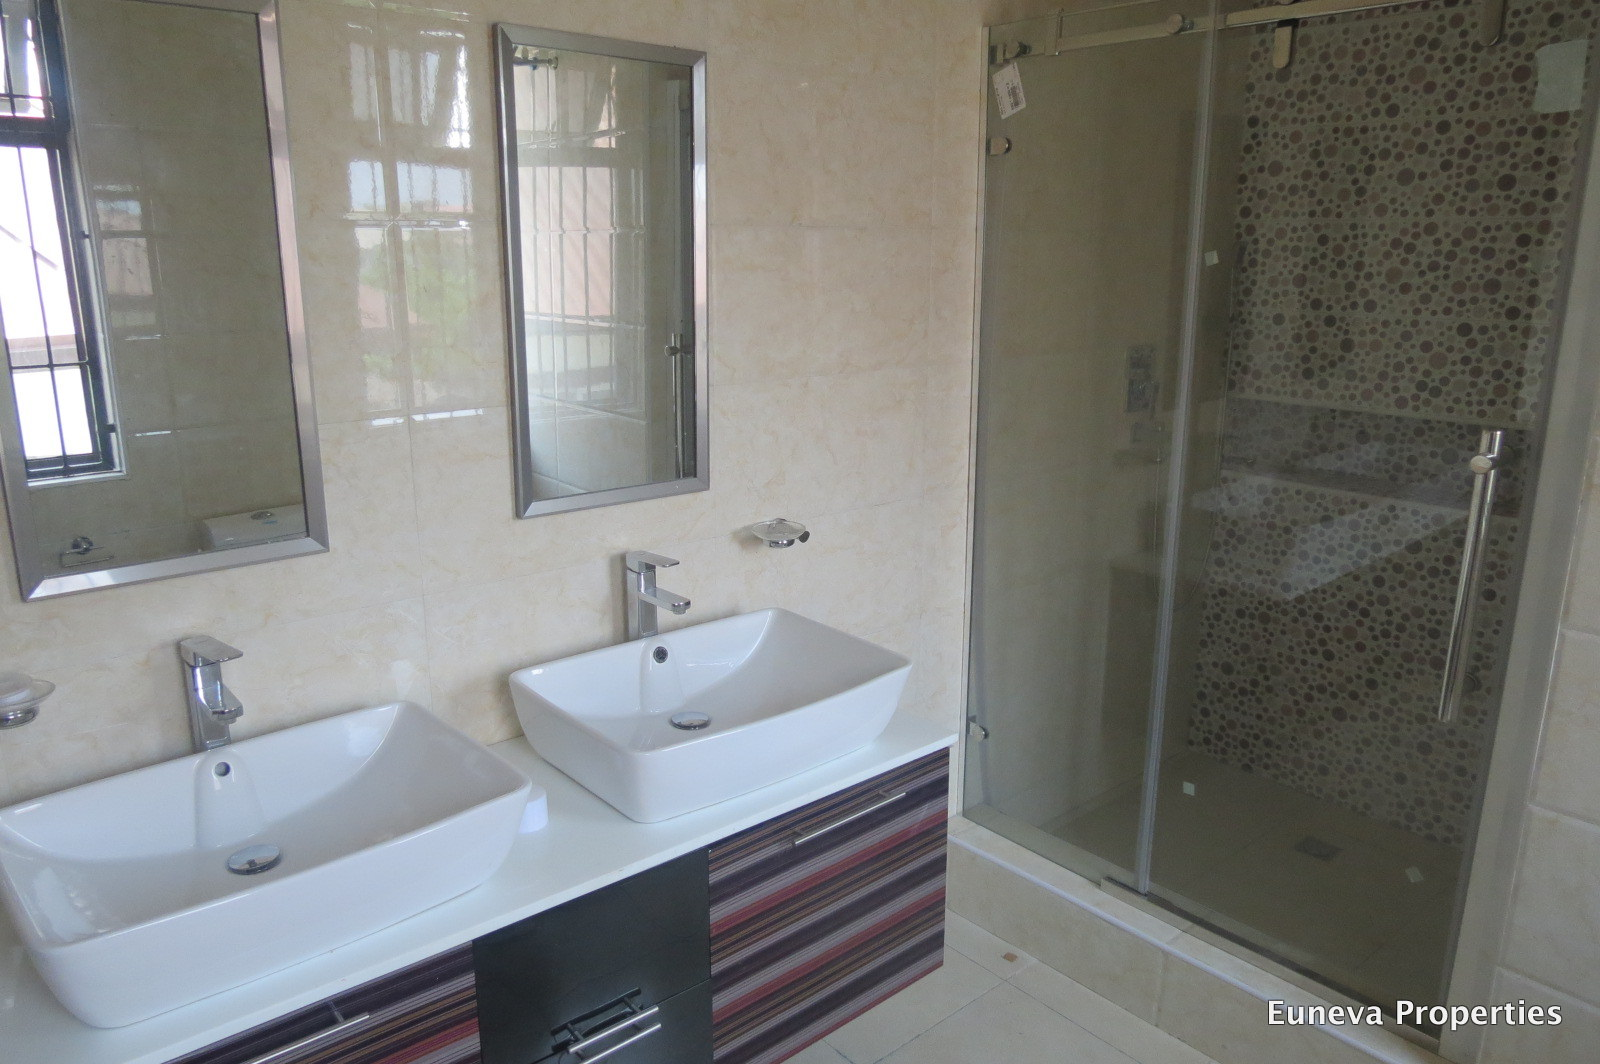 Classic 5 Bedroom Detached Duplex in Lekki Phase 1 with Swimming pool, Gym and Cinema